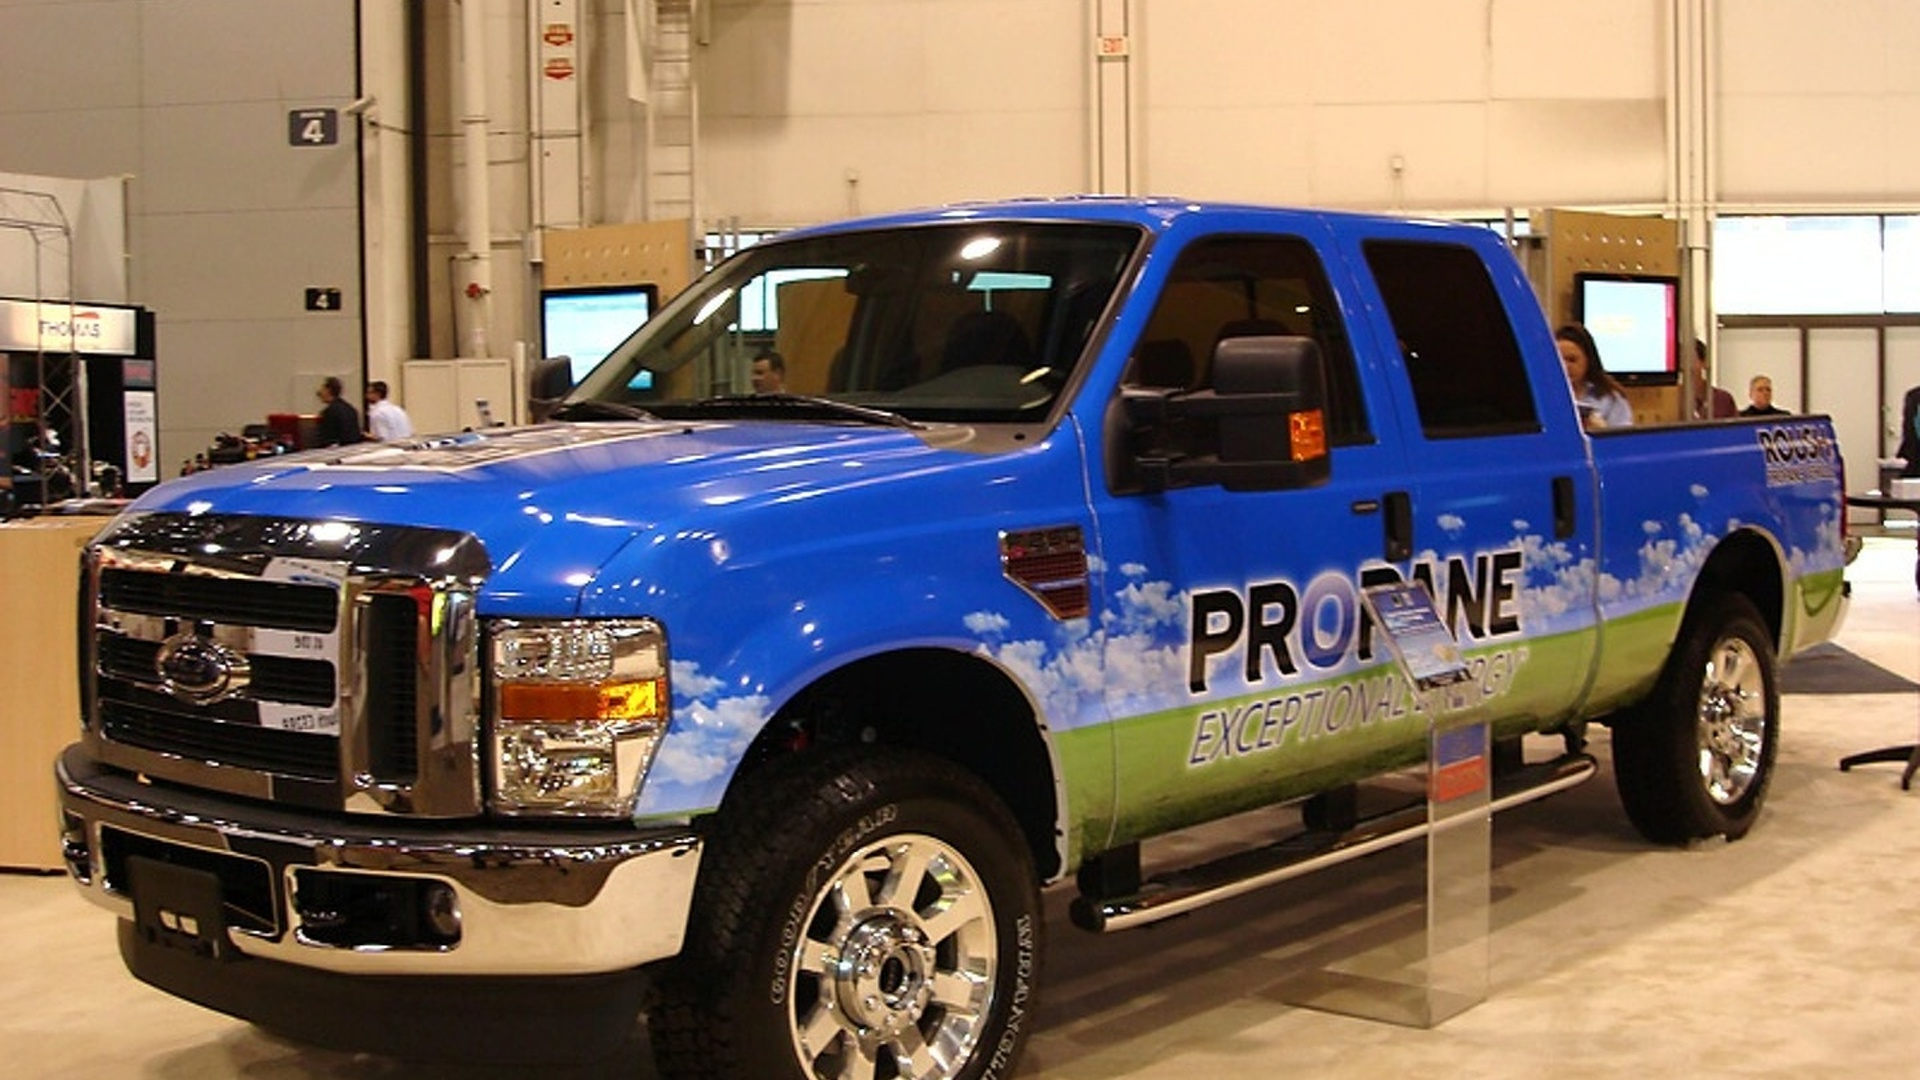 2010 ROUSH Liquid Propane Injected Ford F-250 Unveiled